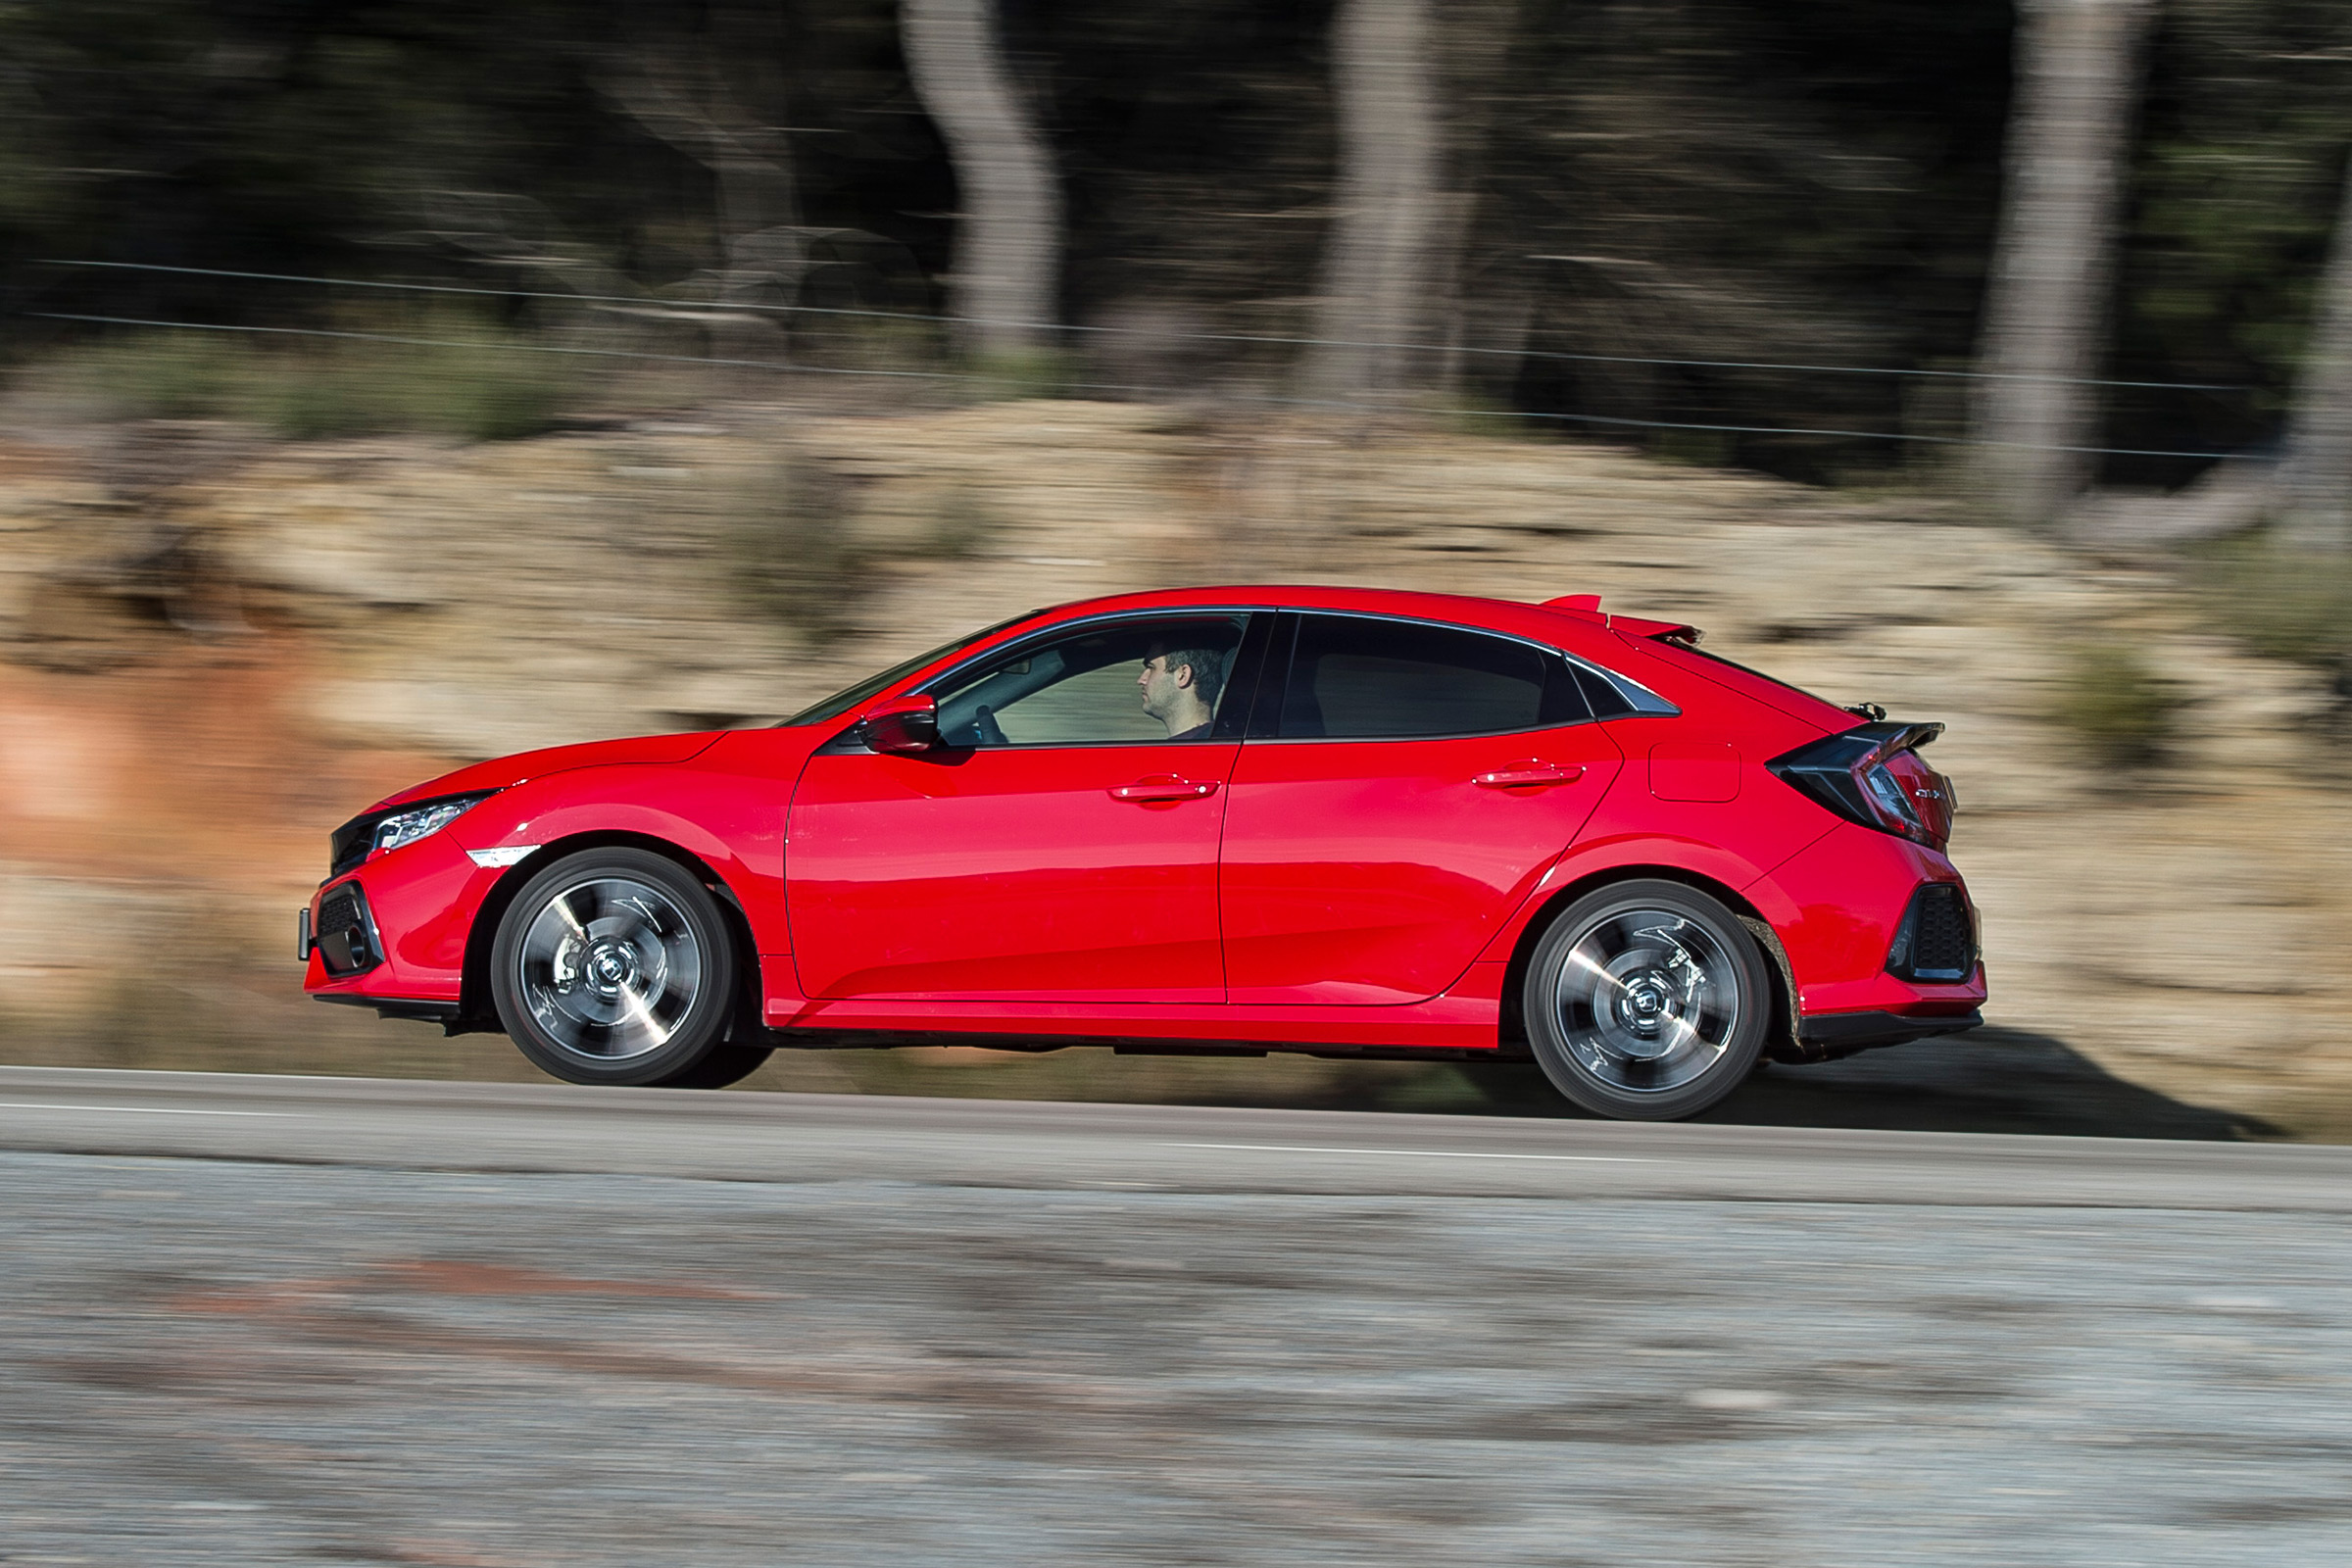 2017 Honda Civic Hatchback Red Test Drive Side View (View 19 of 34)